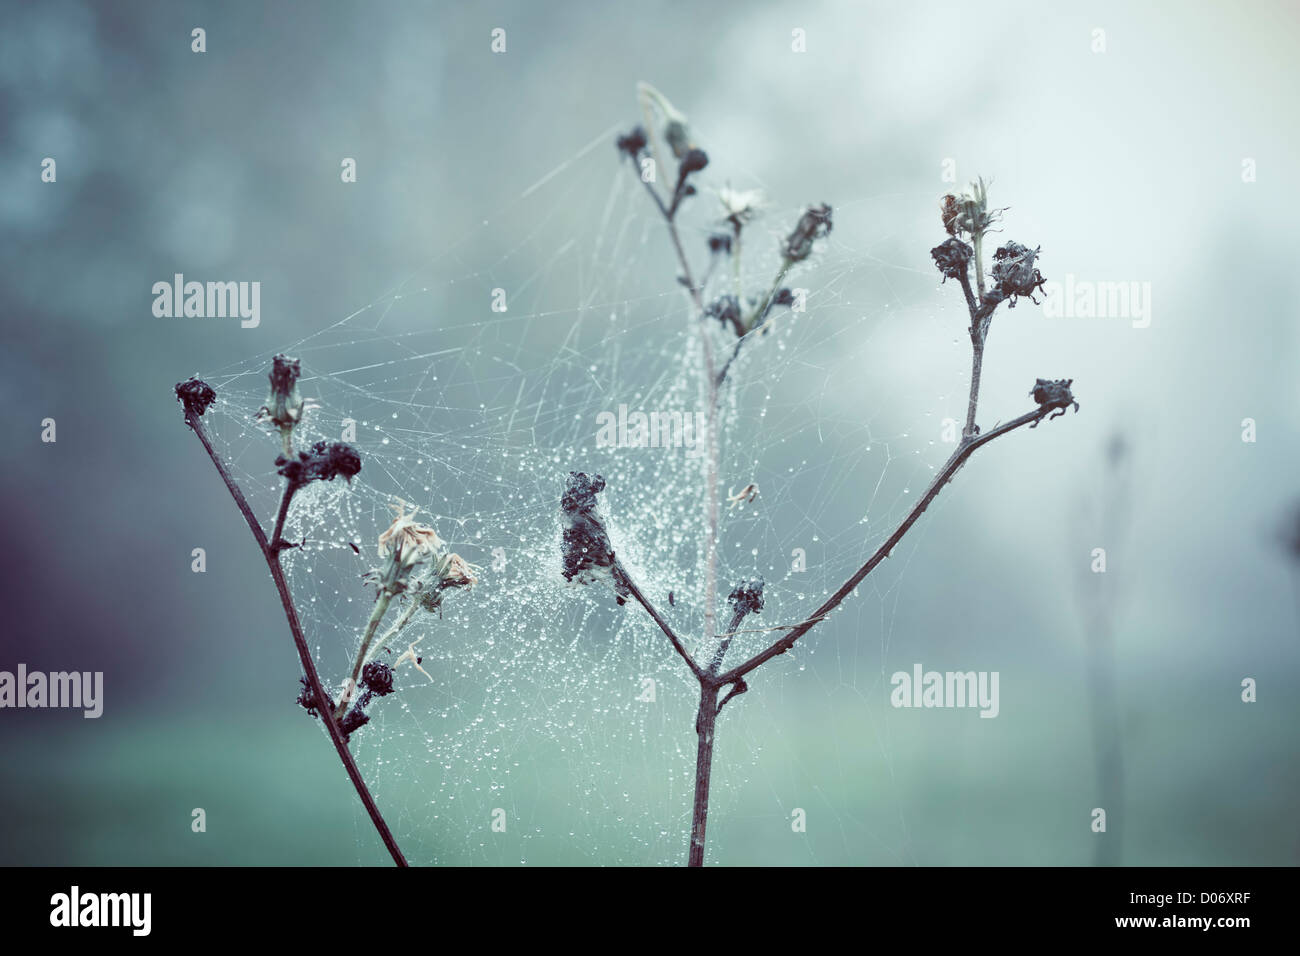 Cobweb covering plant outdoors. - Stock Image